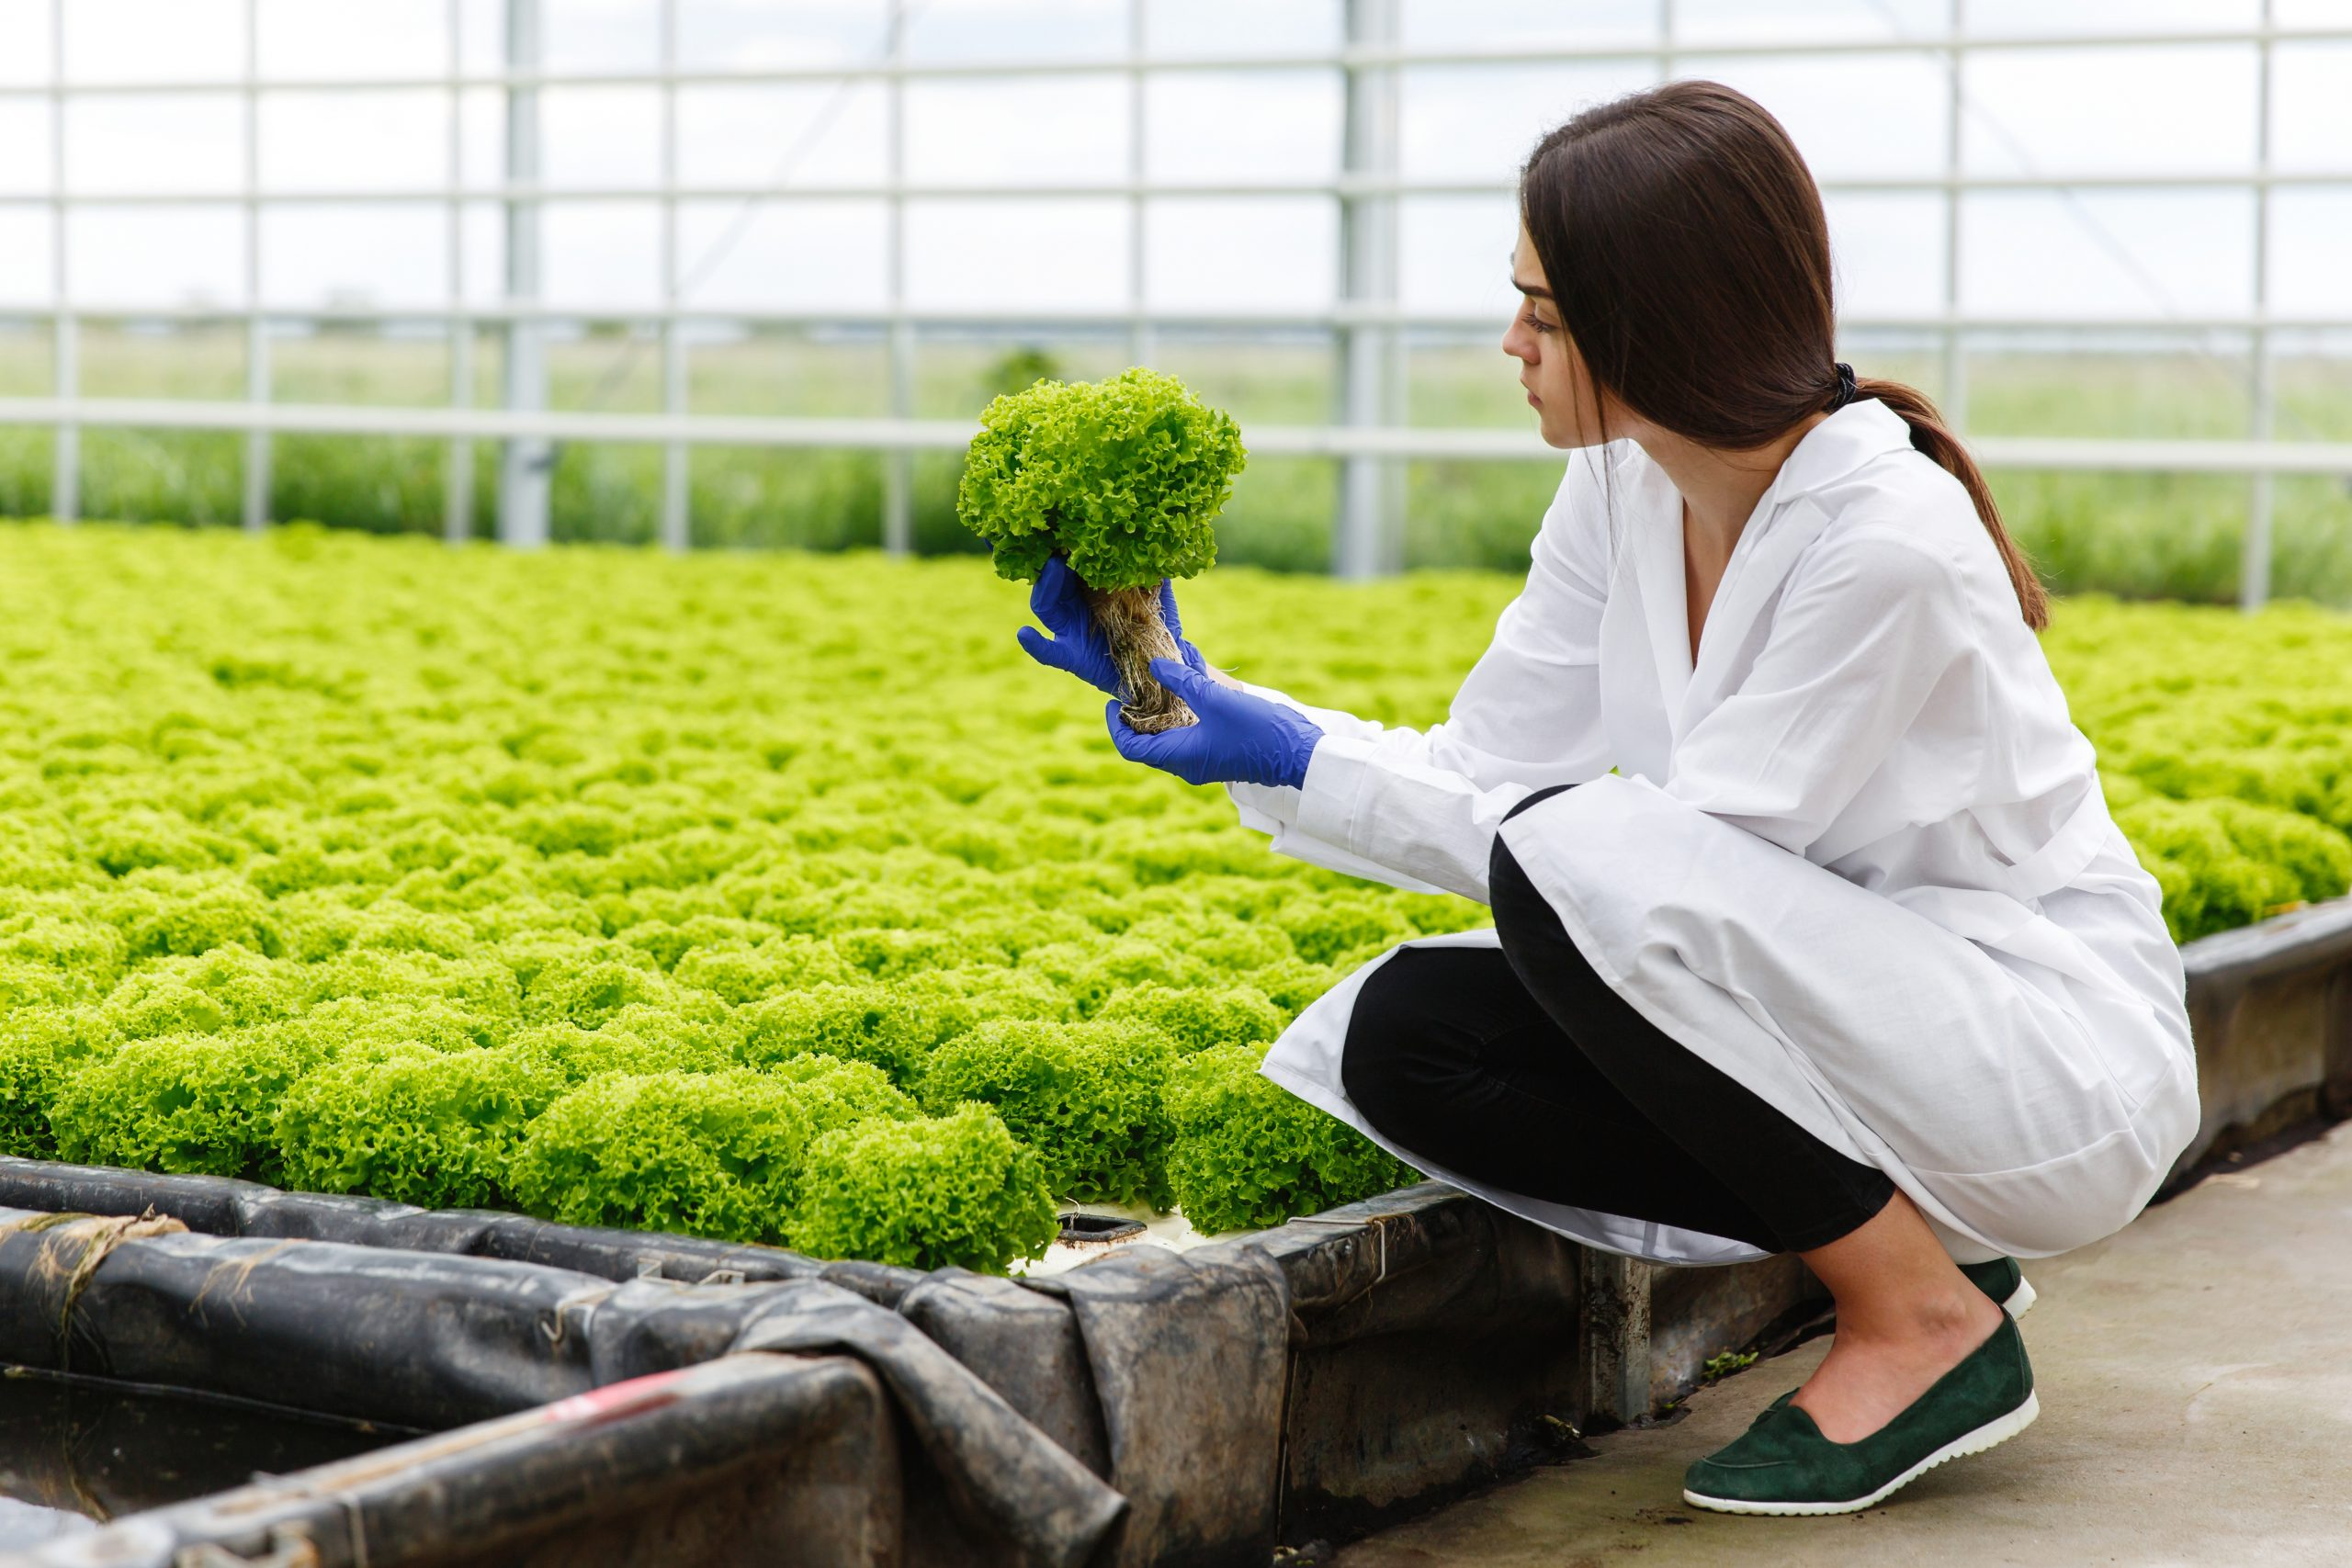 Woman in laboratory robe examines carefully plants in the greenh